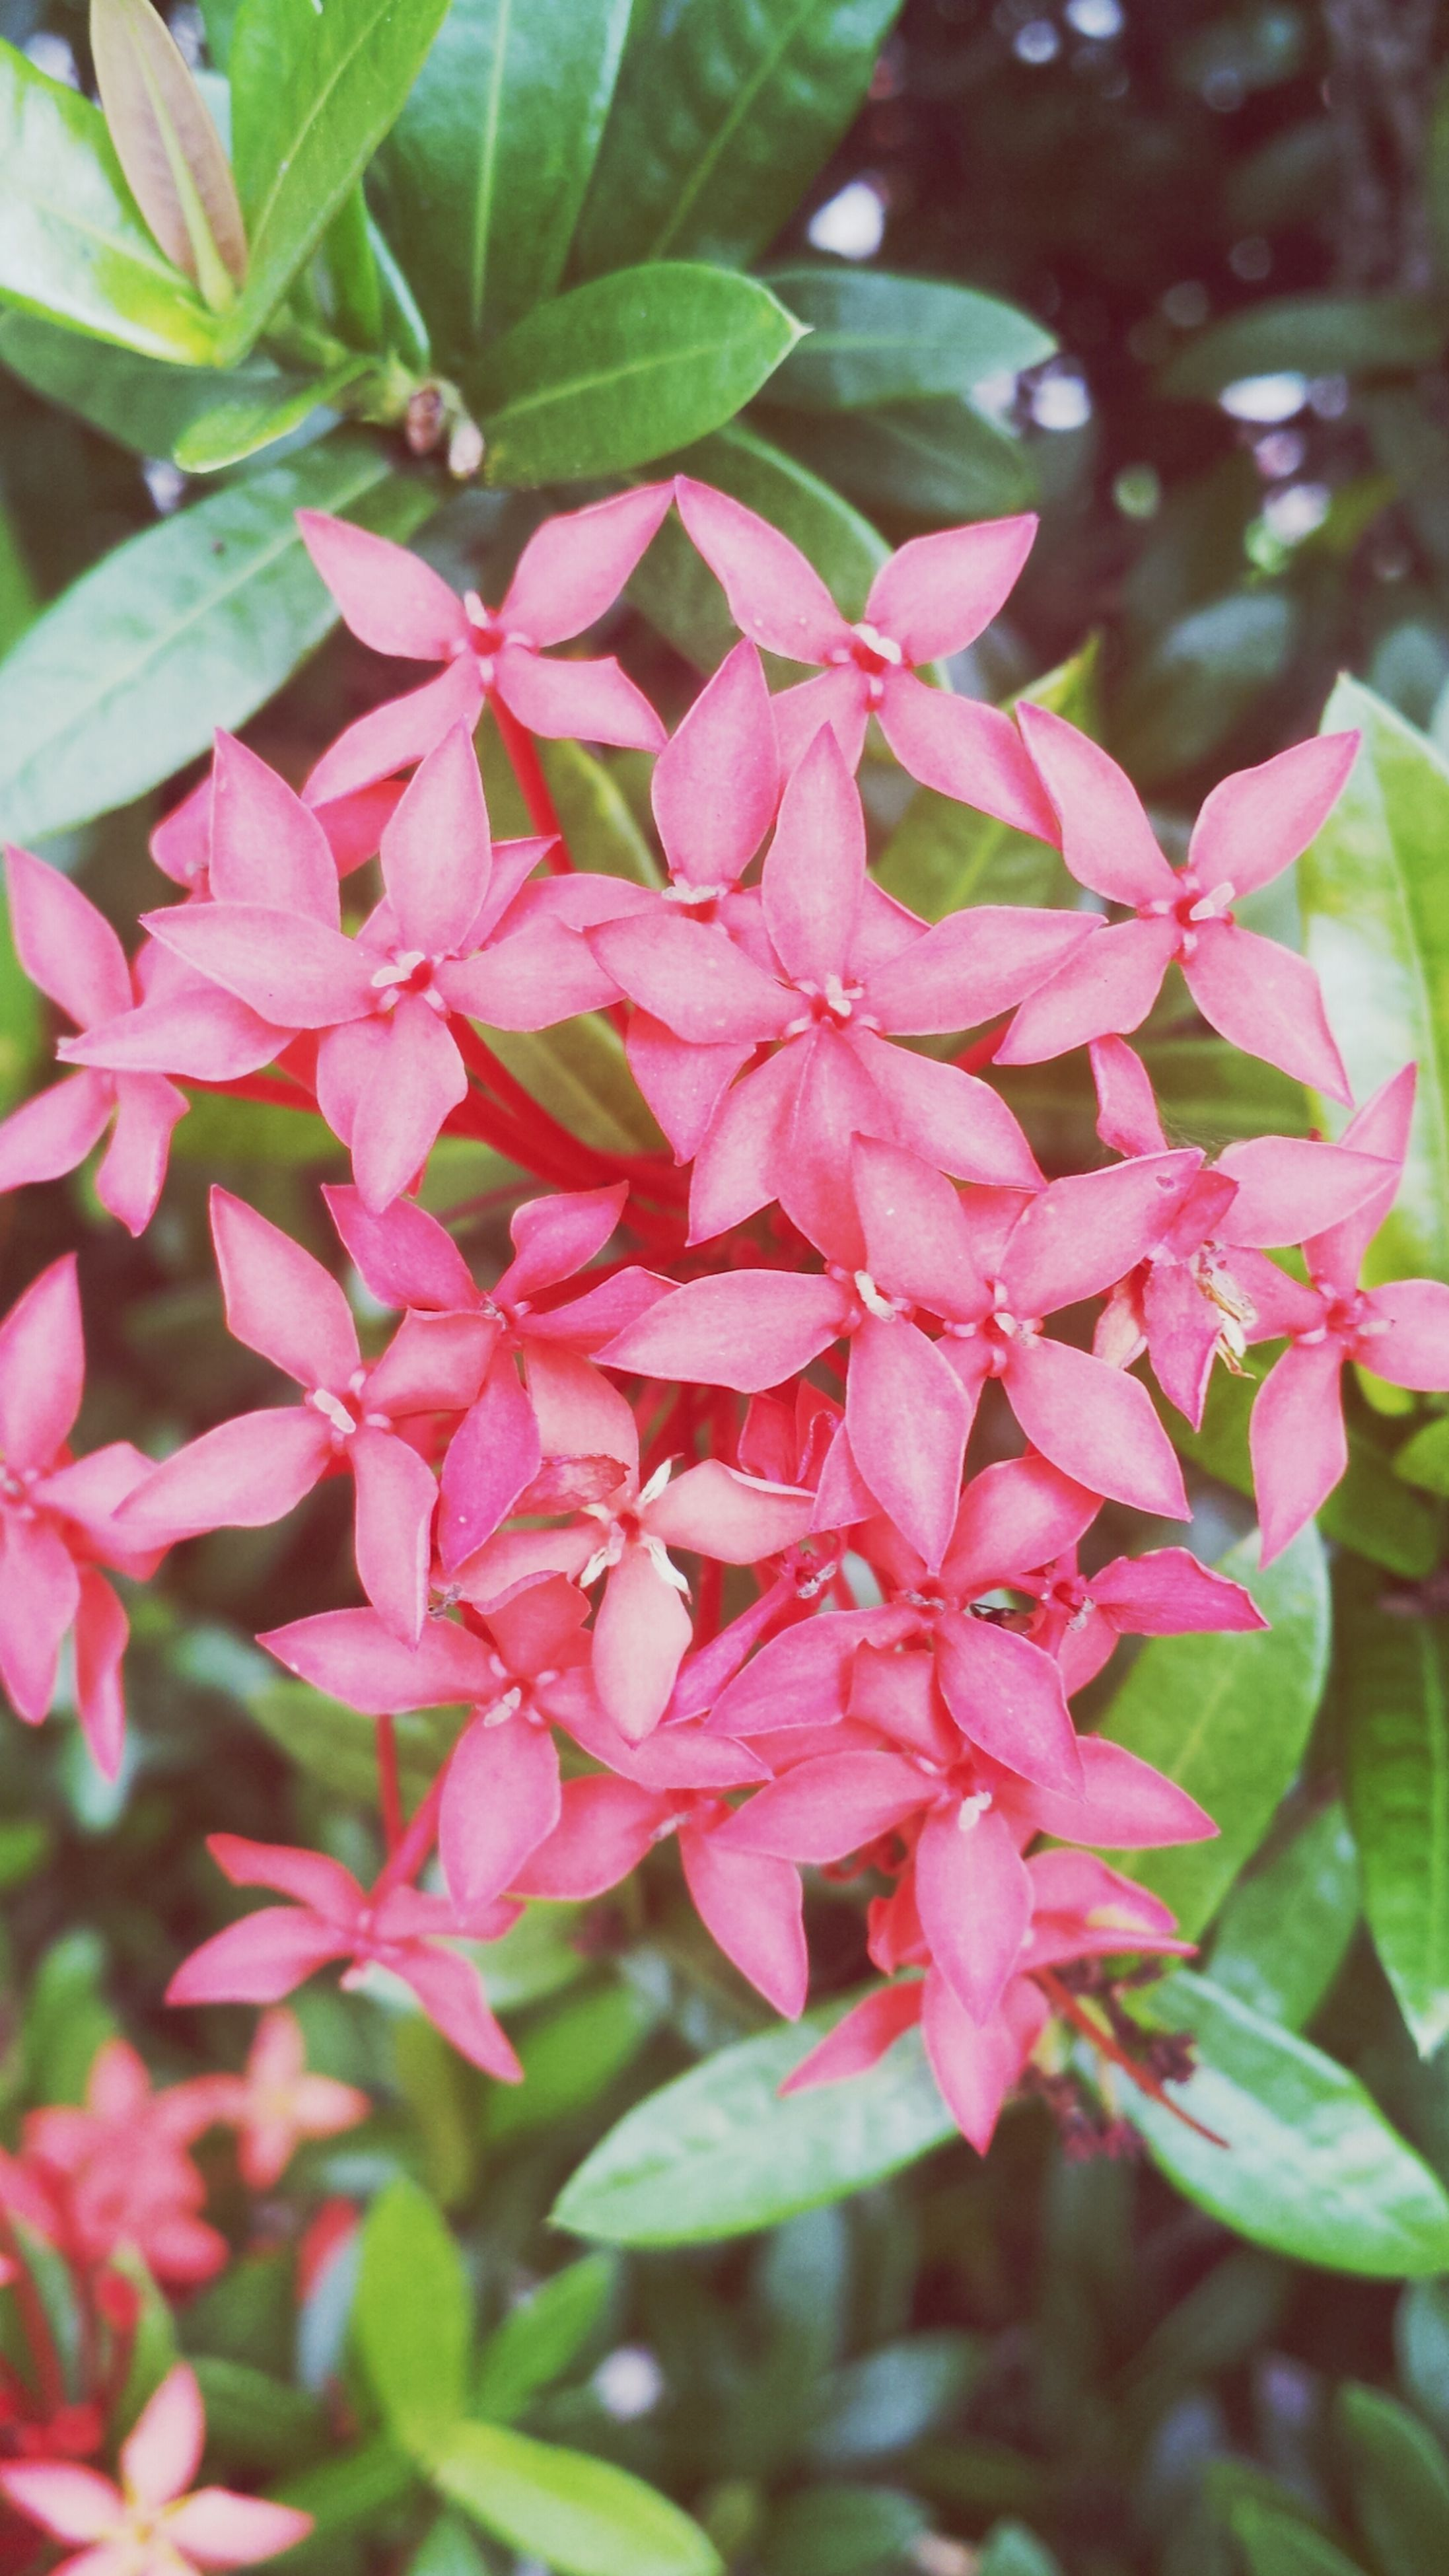 flower, growth, leaf, freshness, pink color, close-up, beauty in nature, fragility, nature, plant, focus on foreground, petal, pink, outdoors, day, green color, blooming, no people, selective focus, park - man made space